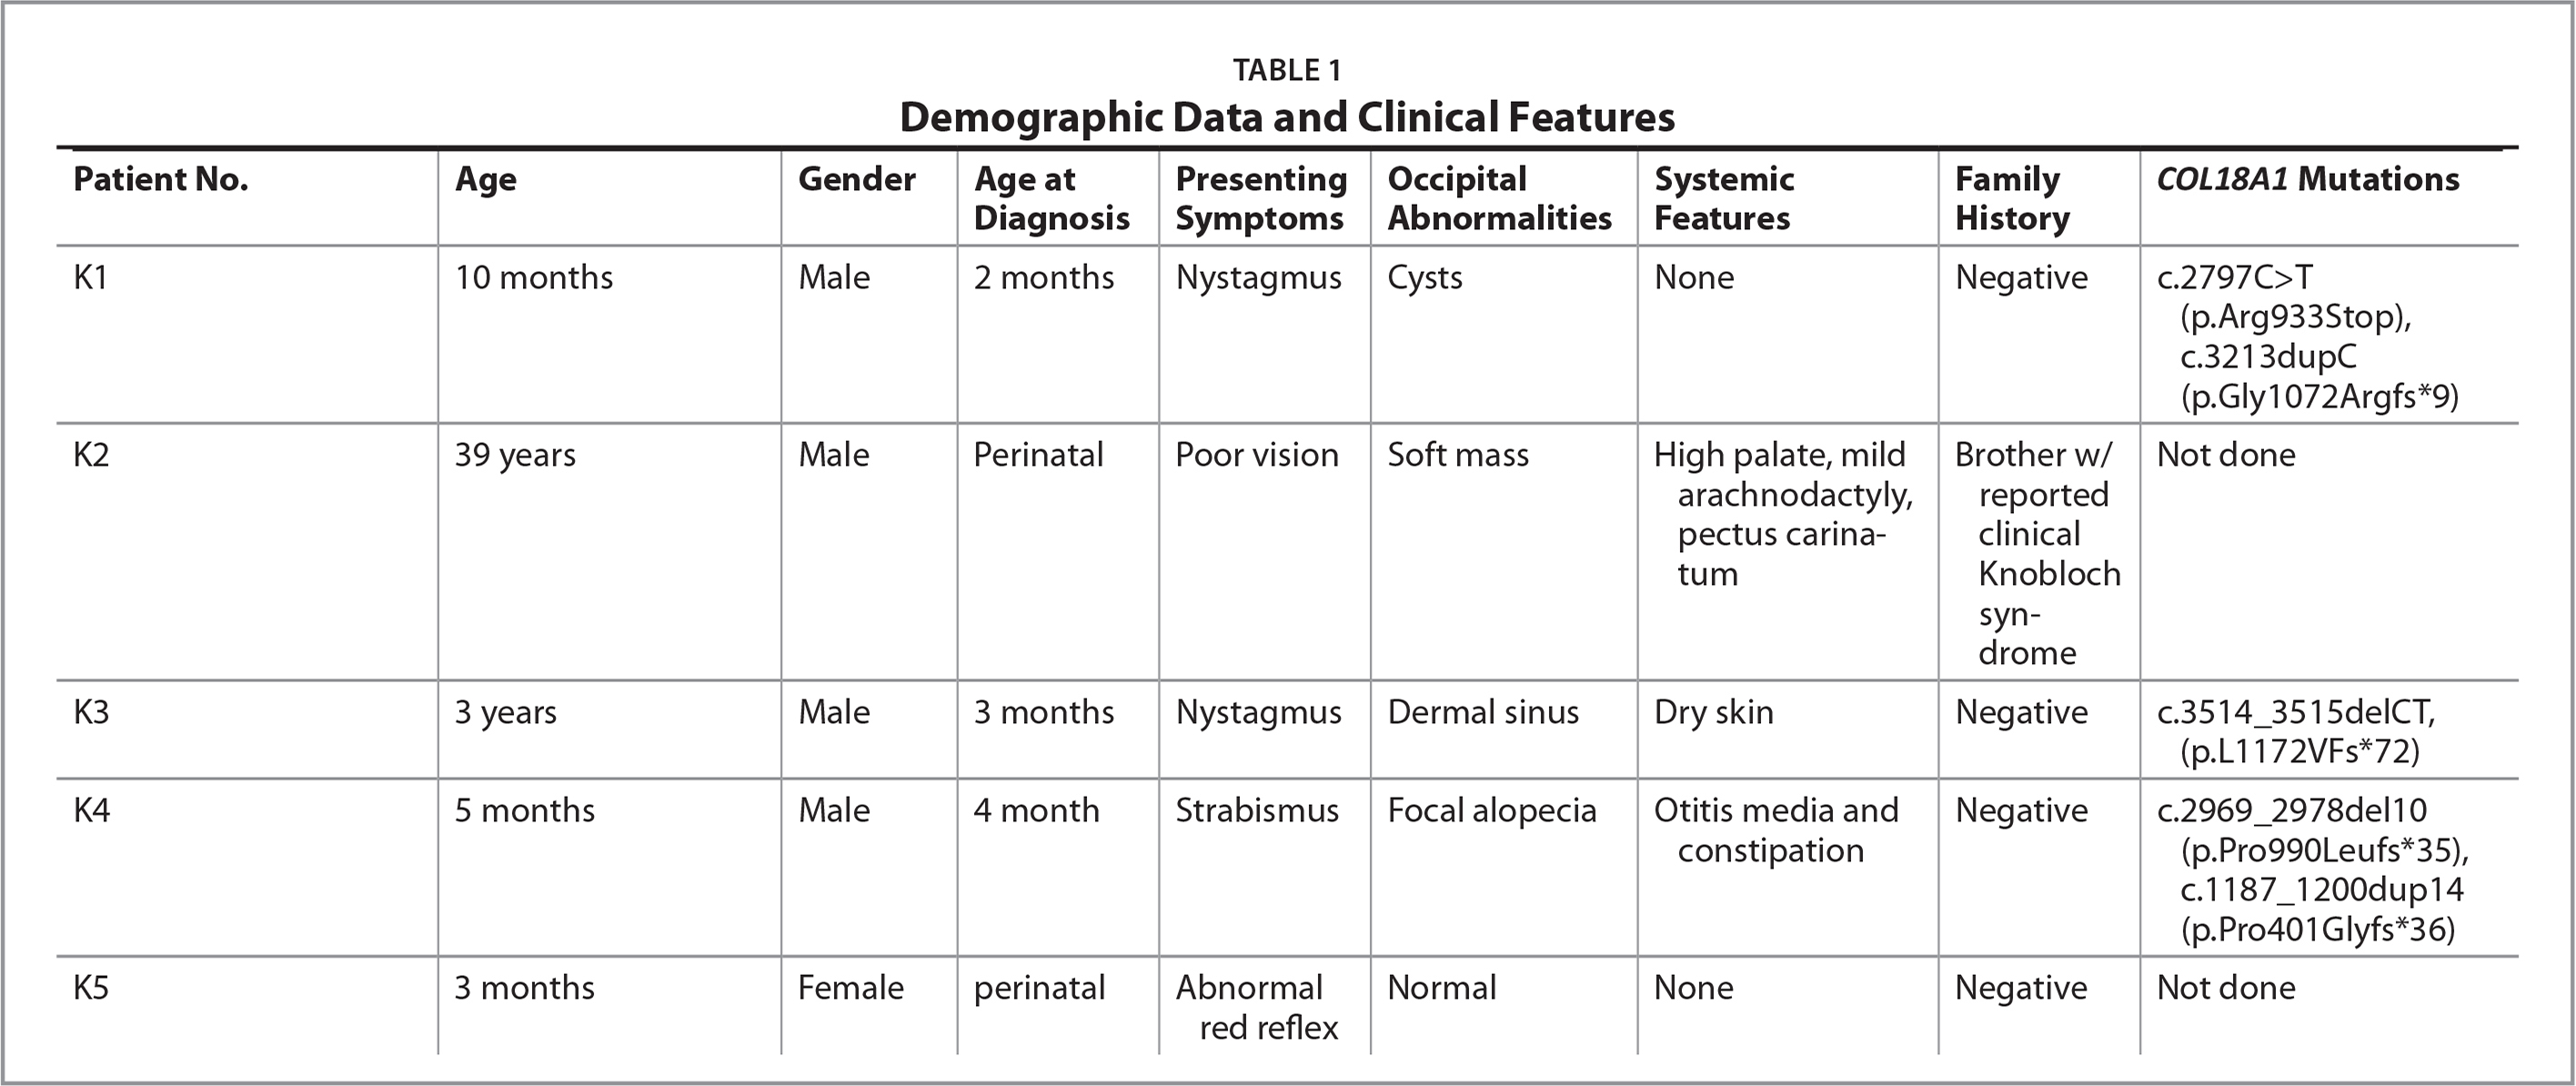 Demographic Data and Clinical Features